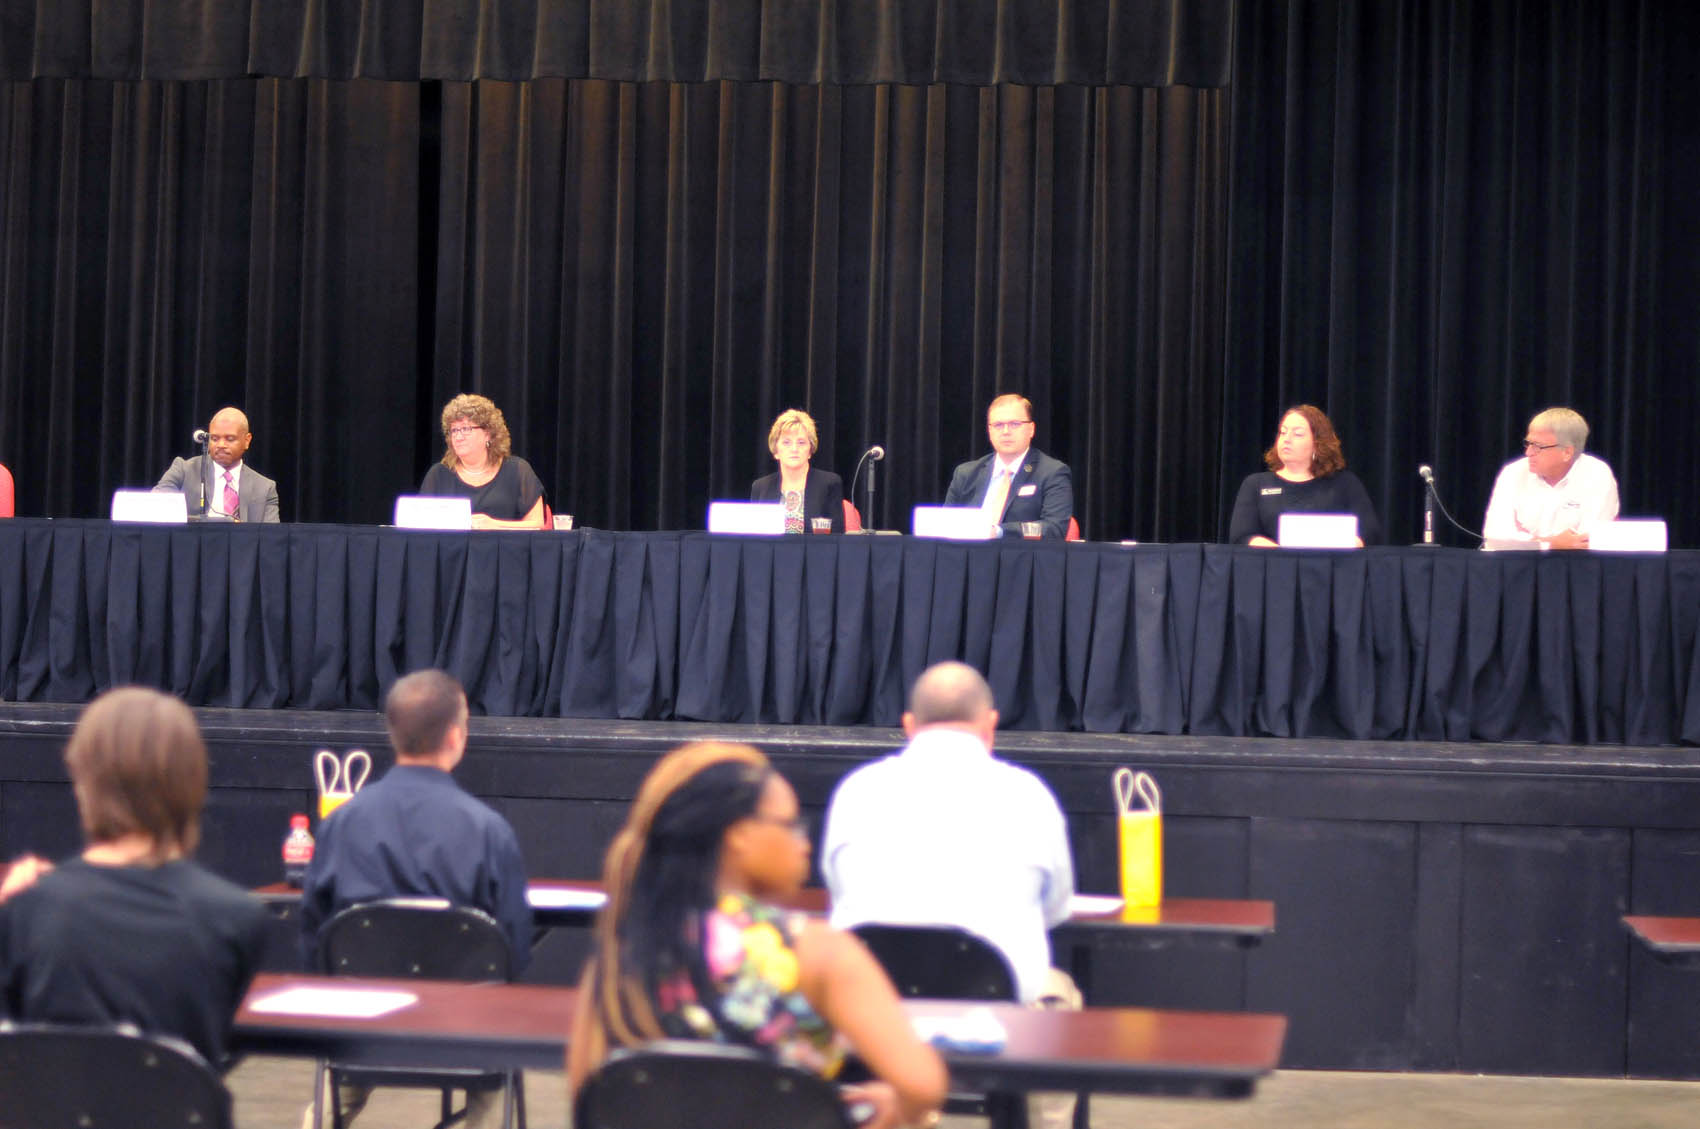 Click to enlarge,  Participants in a FutureWork Prosperity Tour 2016 panel discussion on Wednesday, June 22, included (left to right) Donnie Charleston, Economy Policy Manager, Institute for Emerging Issues; Amy Dalrymple, Chair, Lee County Board of Commissioners; Joyce D. McGehee, Human Resources Director, Lee County; Daniel Simmons, Chief Professional Officer, Boys & Girls Club of Sanford/Lee County; Denise Martin, Program Director, CCCC Health Information Technology; and Jerry Pedley, President and Owner, Mertek Solutions Inc.